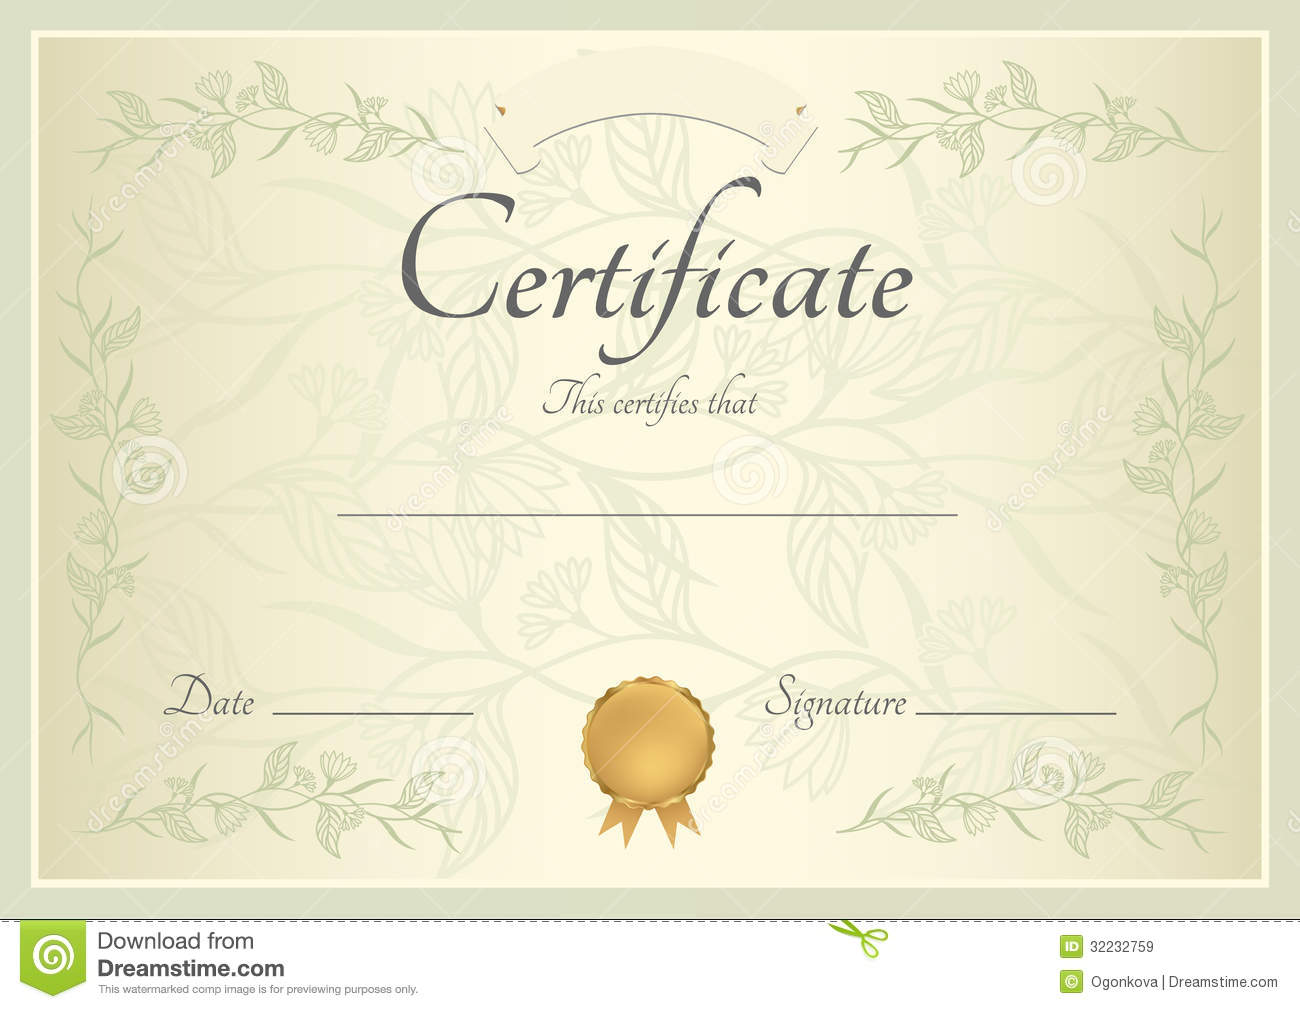 Certificate diploma background template stock vector image certificate diploma background template yelopaper Image collections